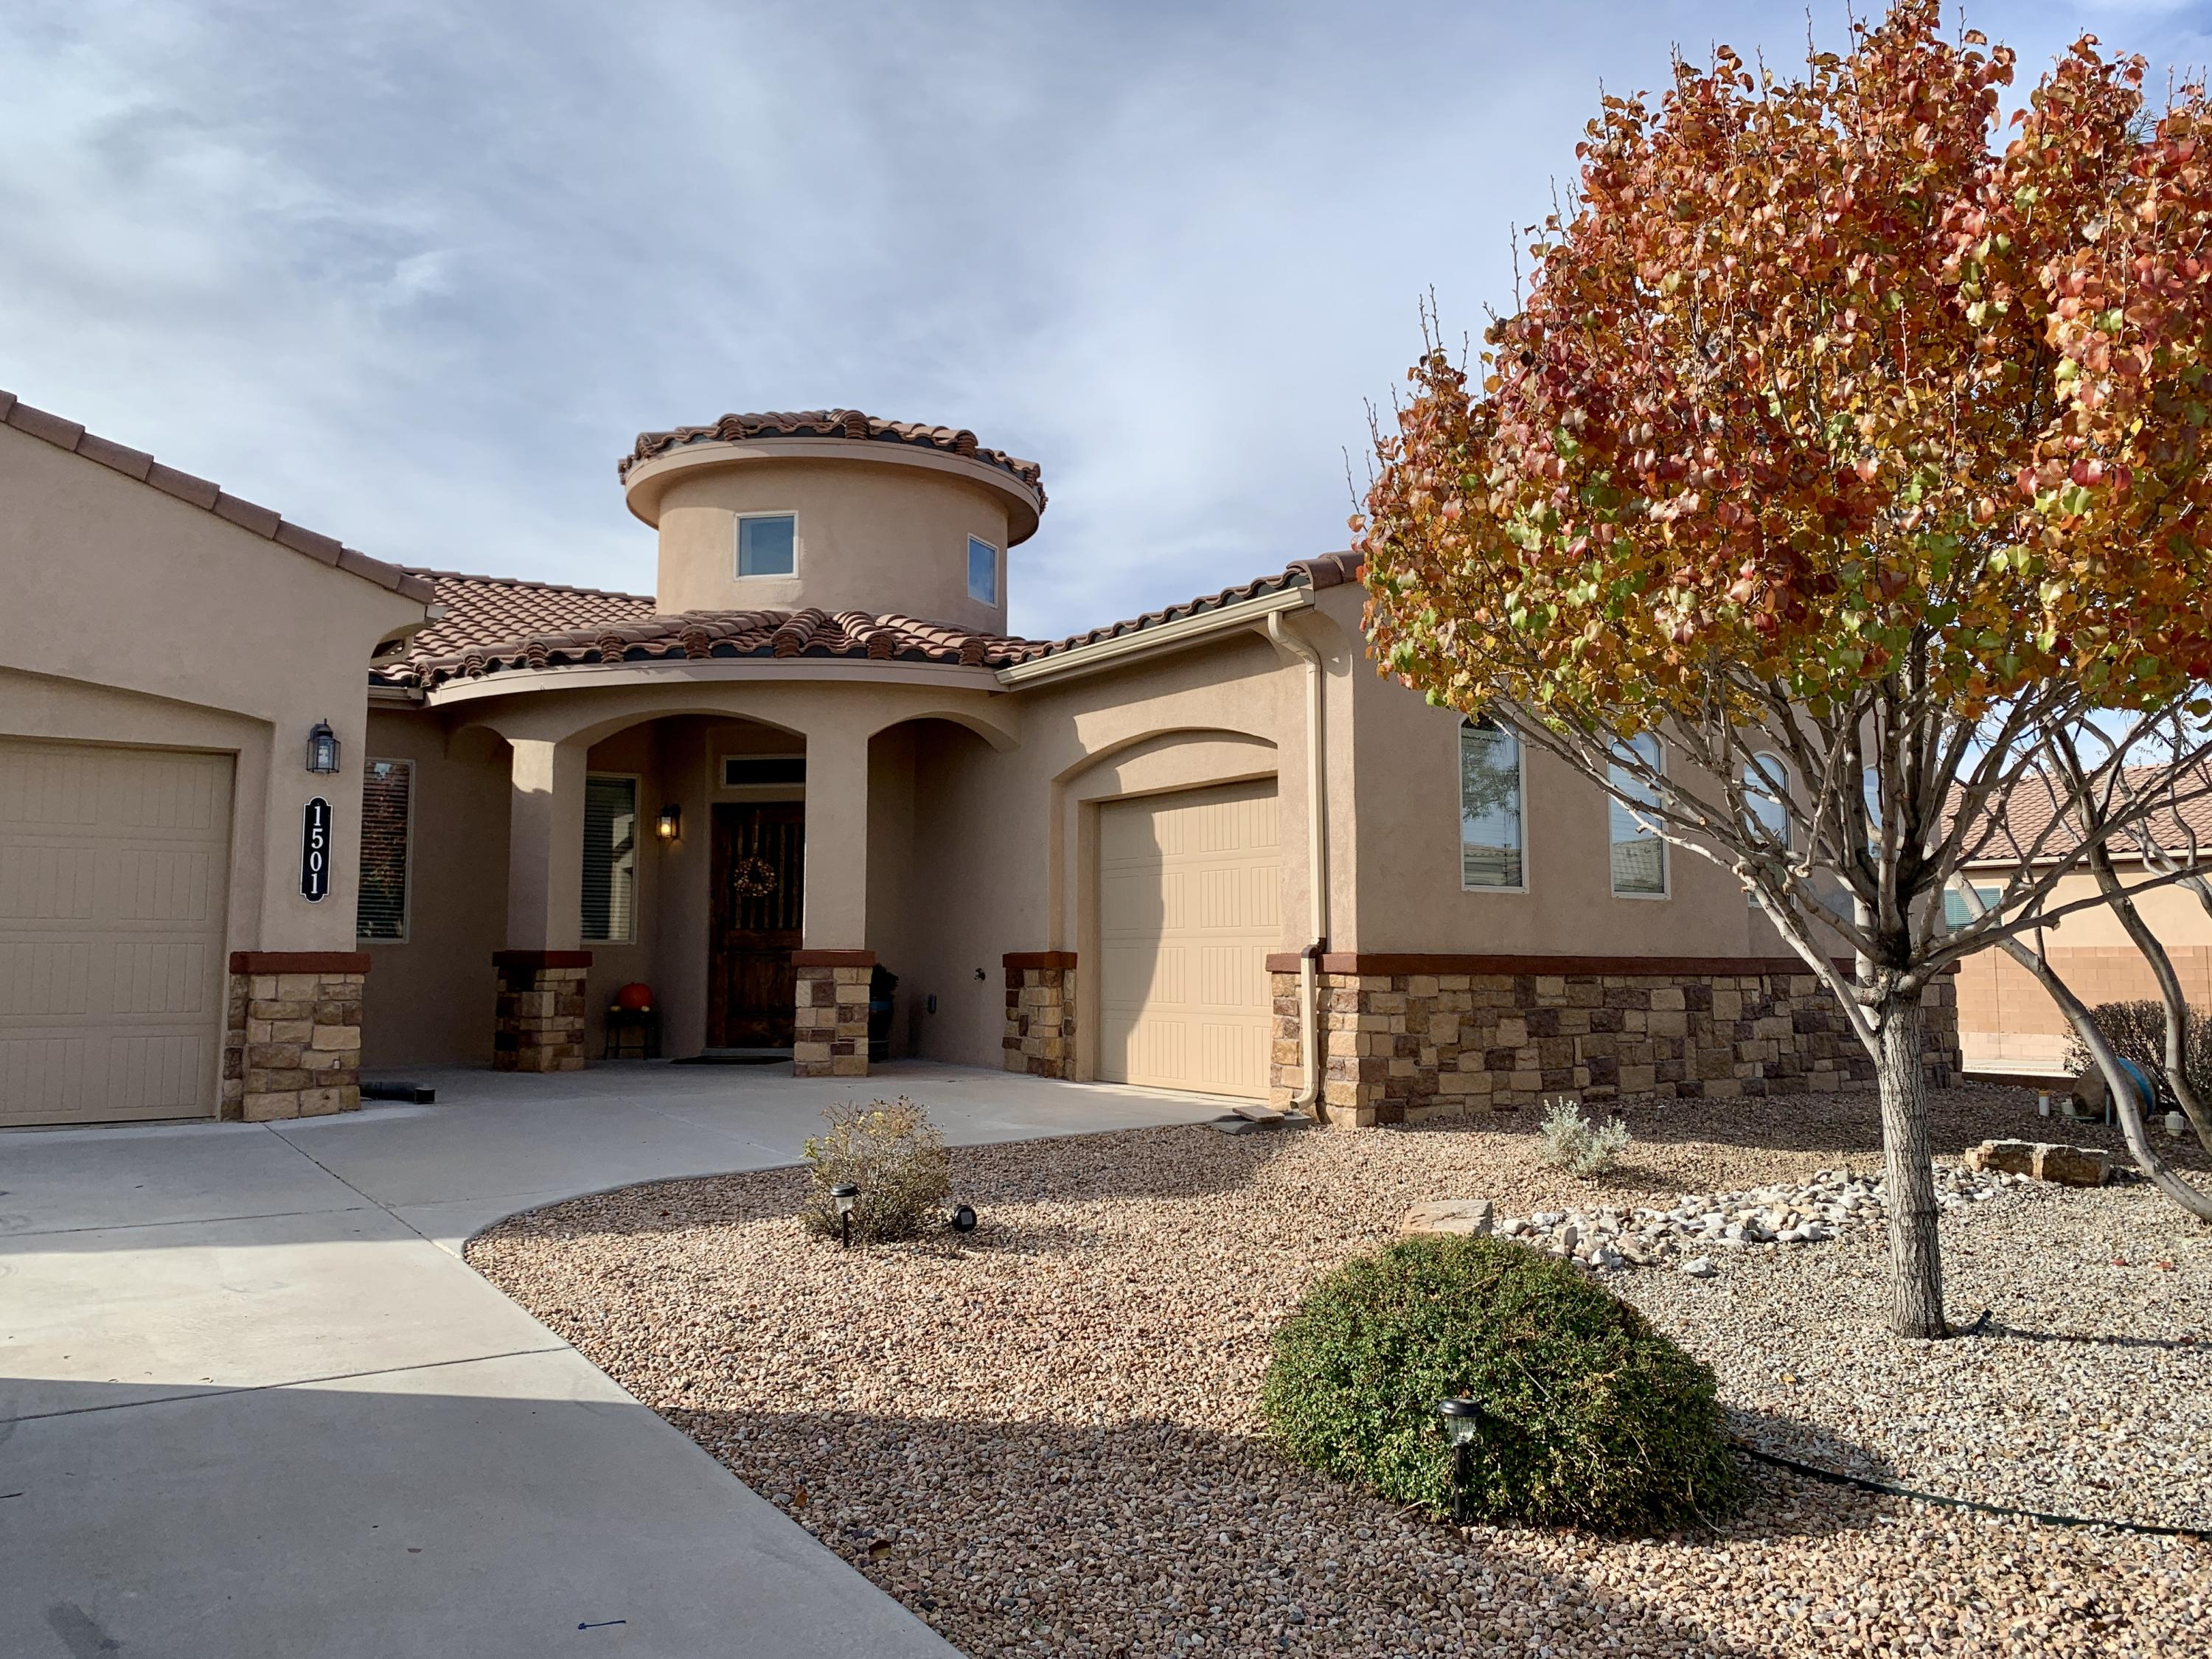 This home in the desirable Cabezon Neighborhood of Rio Rancho shines with pride of ownership. As you enter through the custom front door you will see the attention to detail throughout. The home has an open concept floor plan, with a gas log fireplace in the main living area. The outdoor back patio was tastefully and professionally enclosed with its own heating/cooling unit. The large master bedroom and master bath make a relaxing retreat for the owners. The garages have epoxy floors and the single bay garage has it own heating/cooling unit. Besides the garage space for storage, there is finished attic space with lighting to store your items. Built in bancos in the  landscaped back yard is inviting to allow you to enjoy the space.